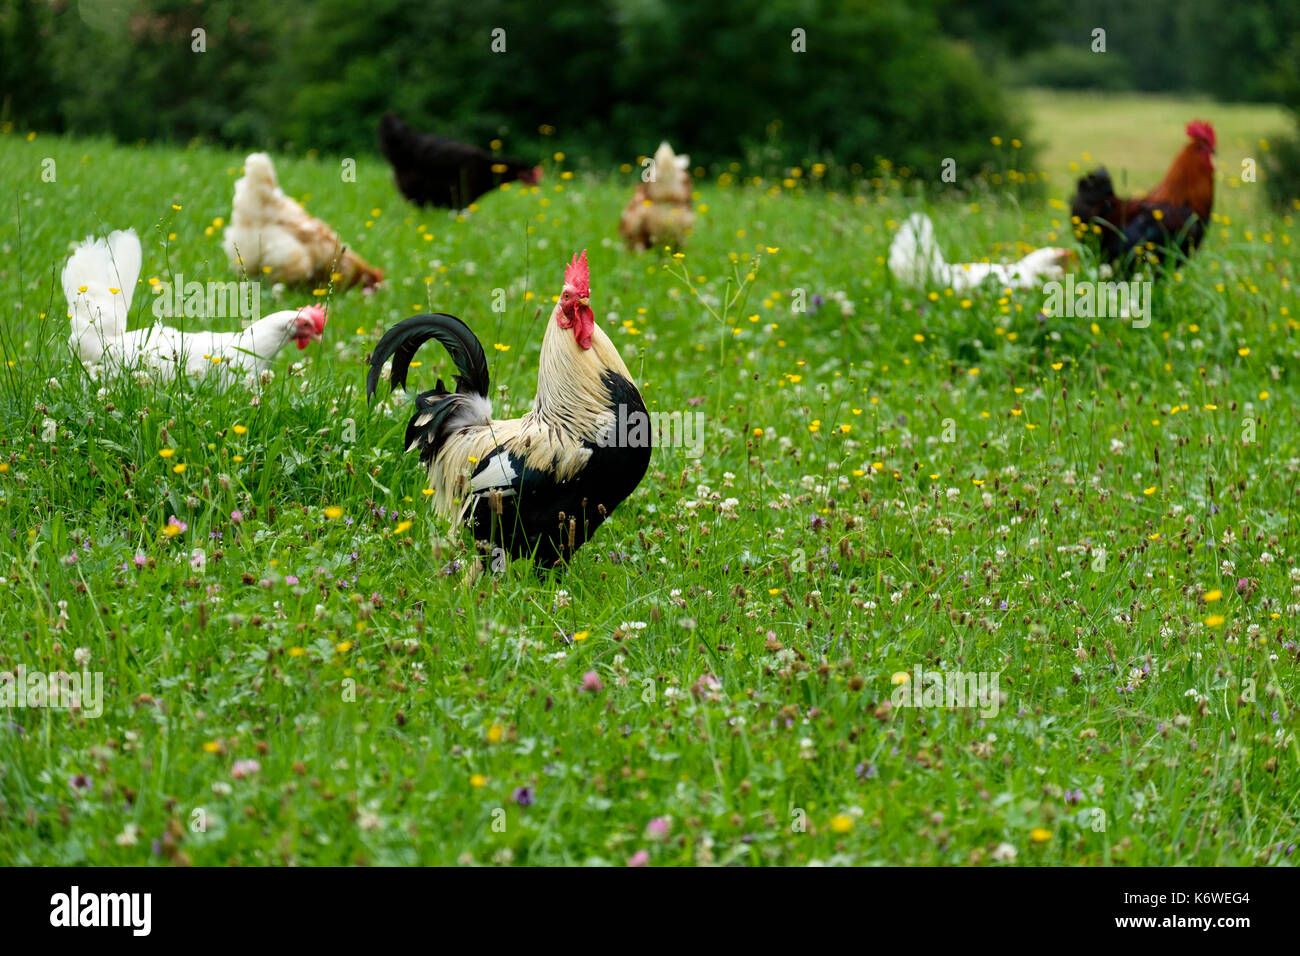 Rooster on a flower meadow, poultry, breed Dorking, Schwaiganger, Ohlstadt, Oberbayern, Germany - Stock Image